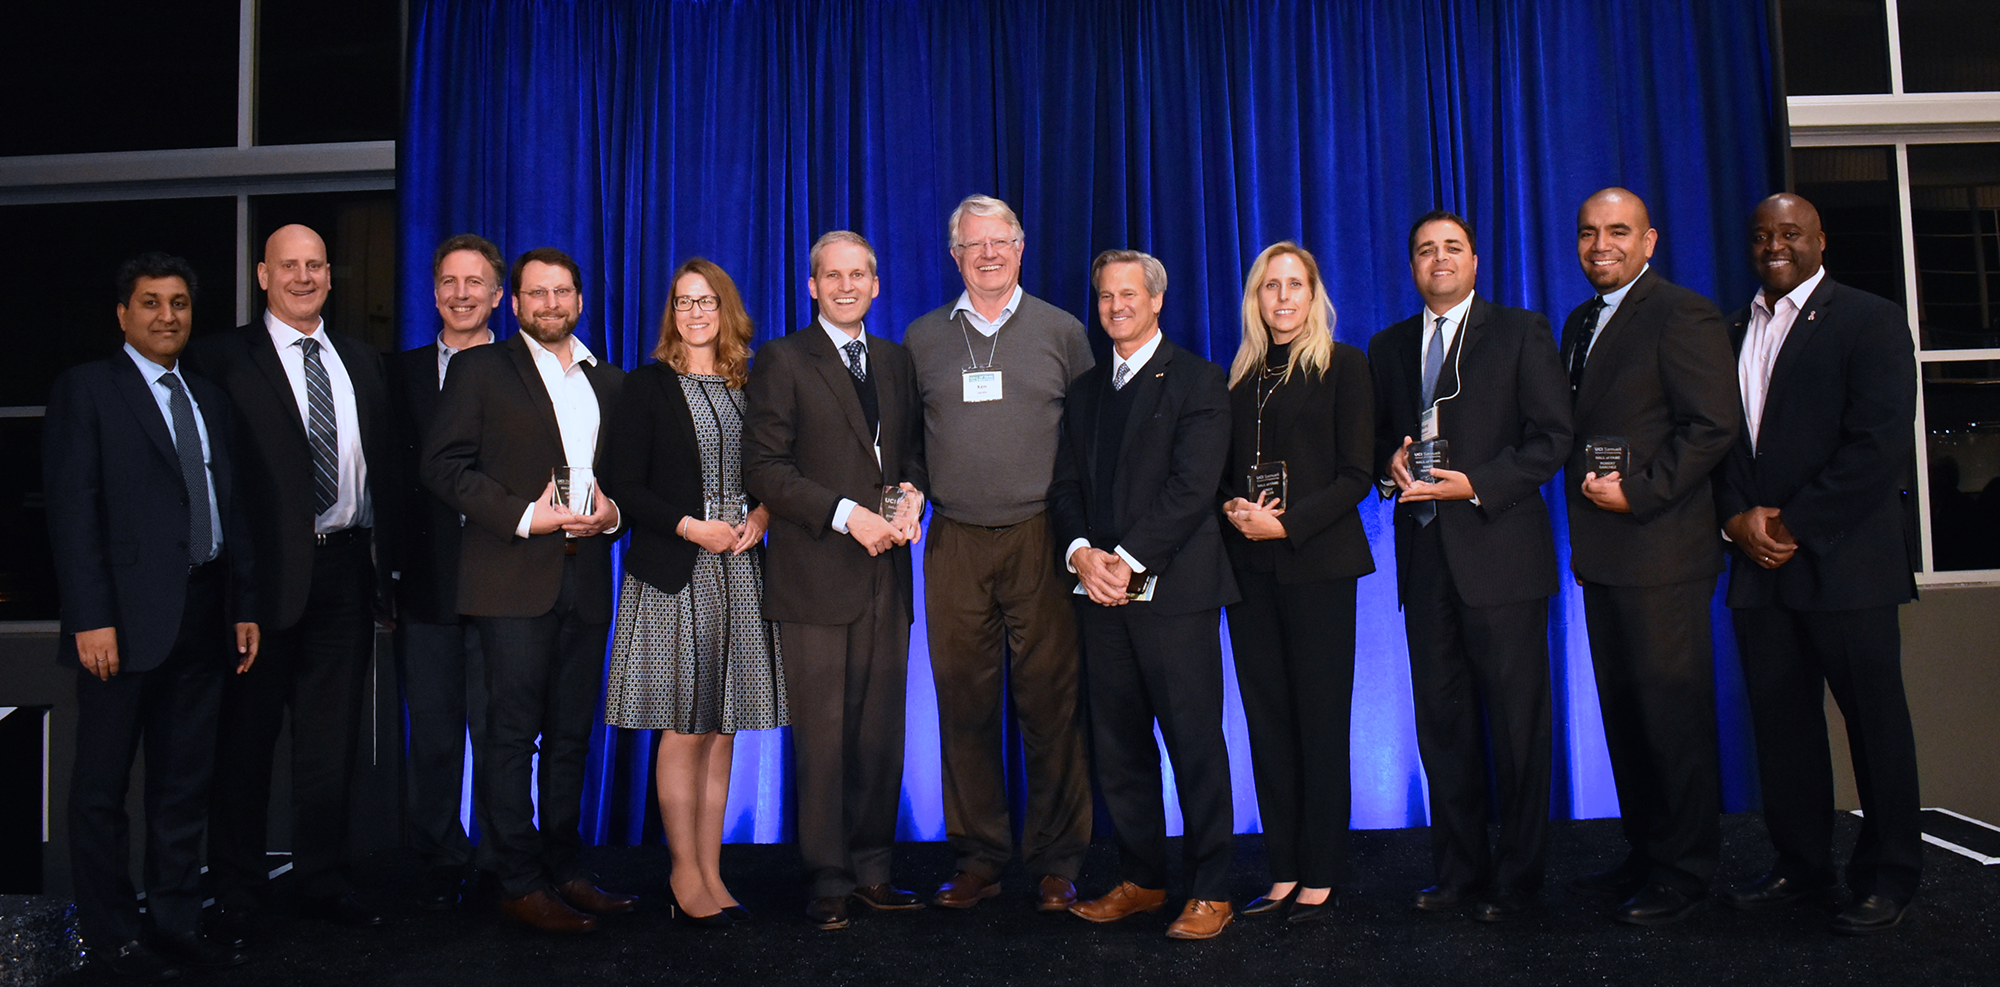 Eleven Alumni Inducted into Hall of Fame at Joint Celebration | The